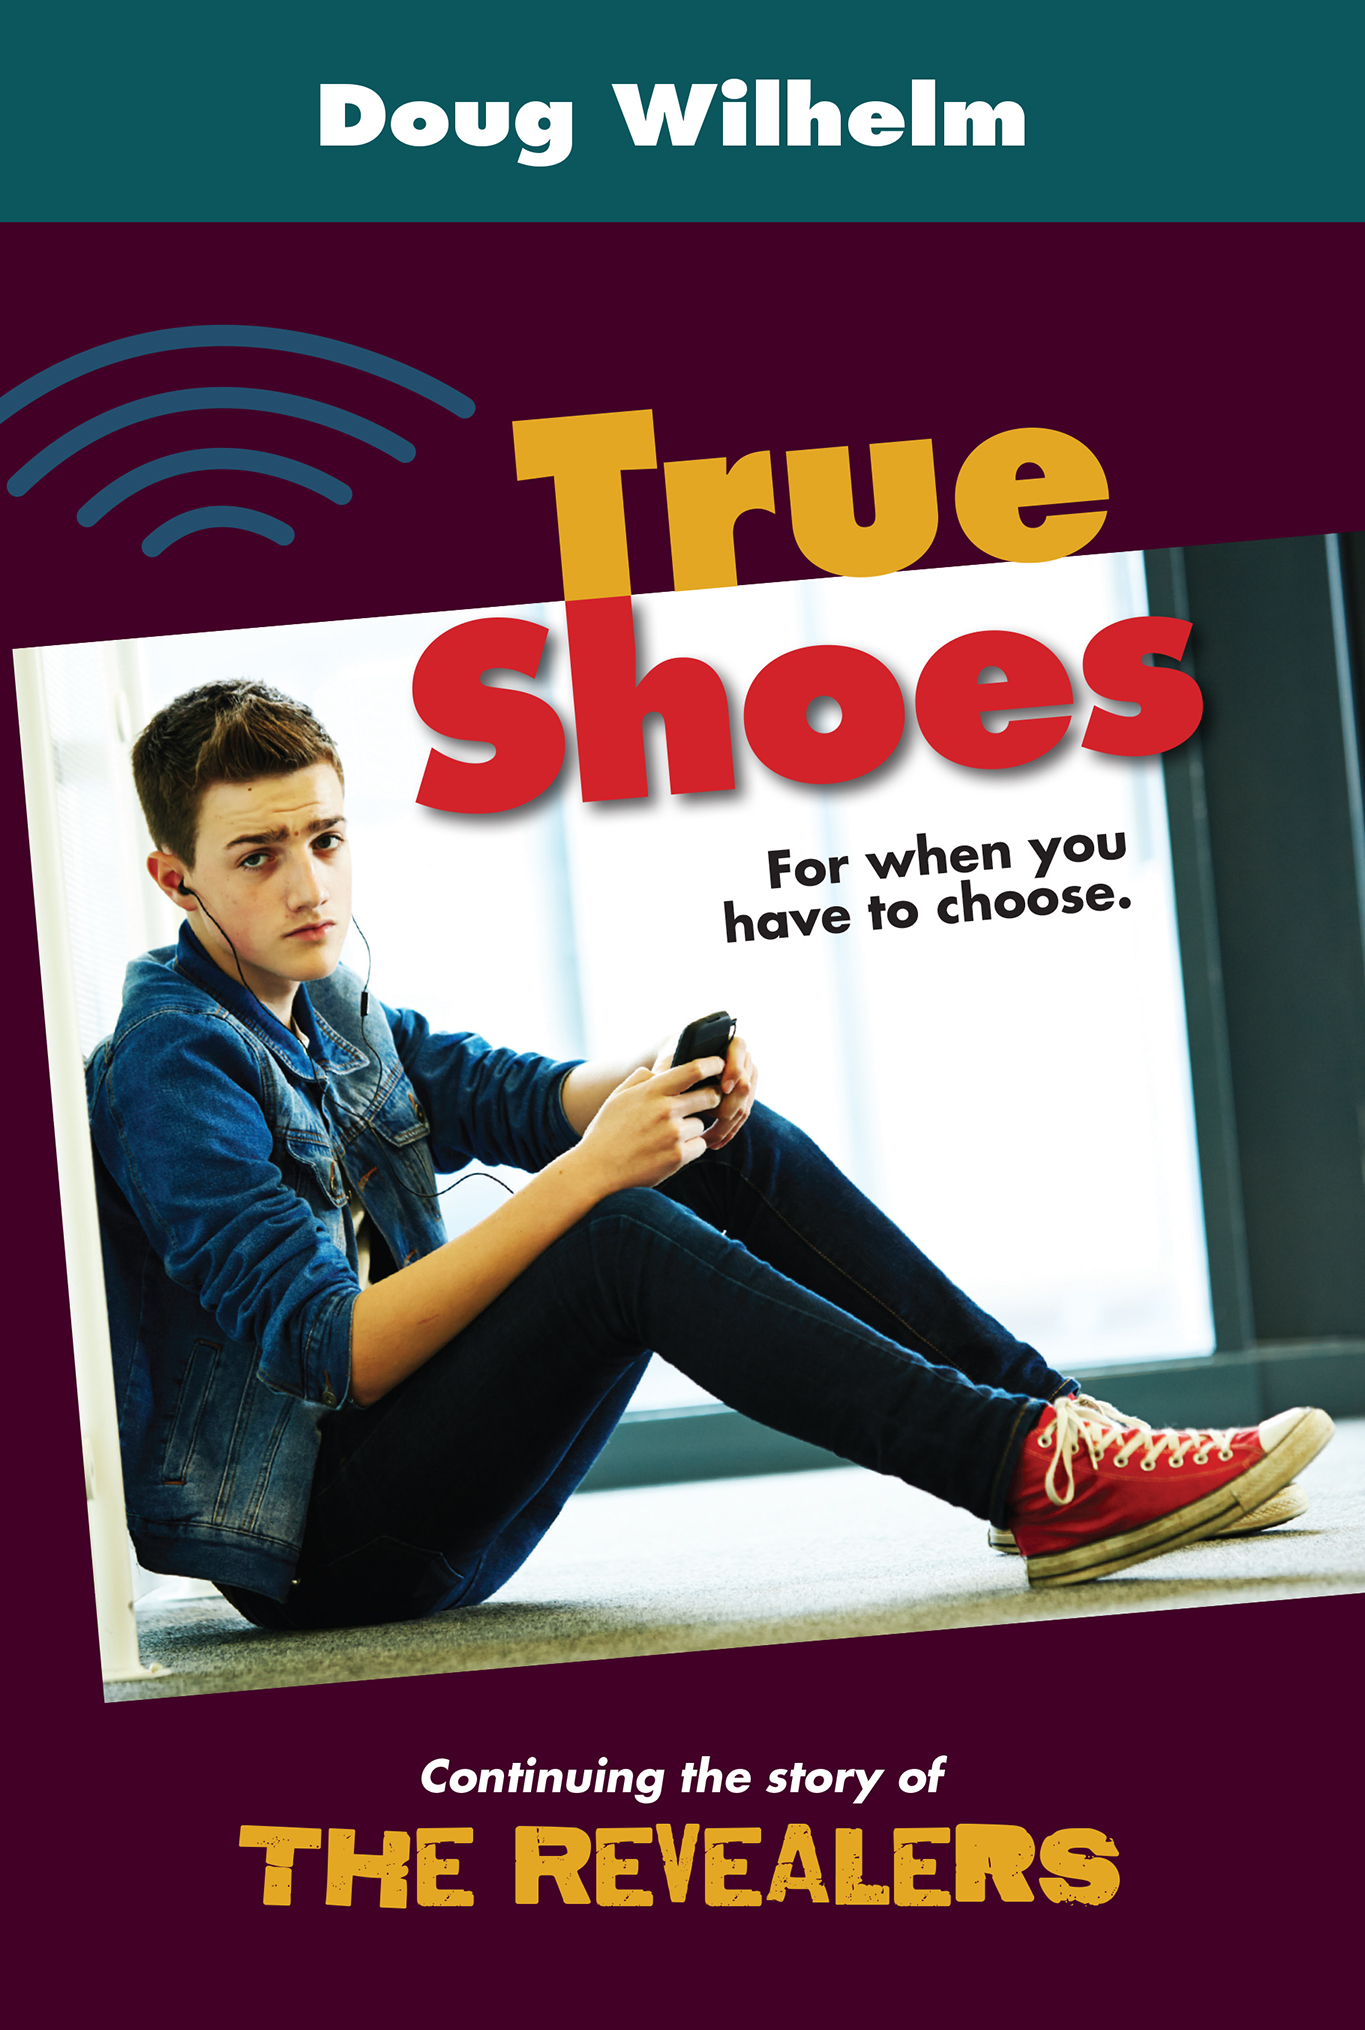 True Shoes cover 6 18 2013